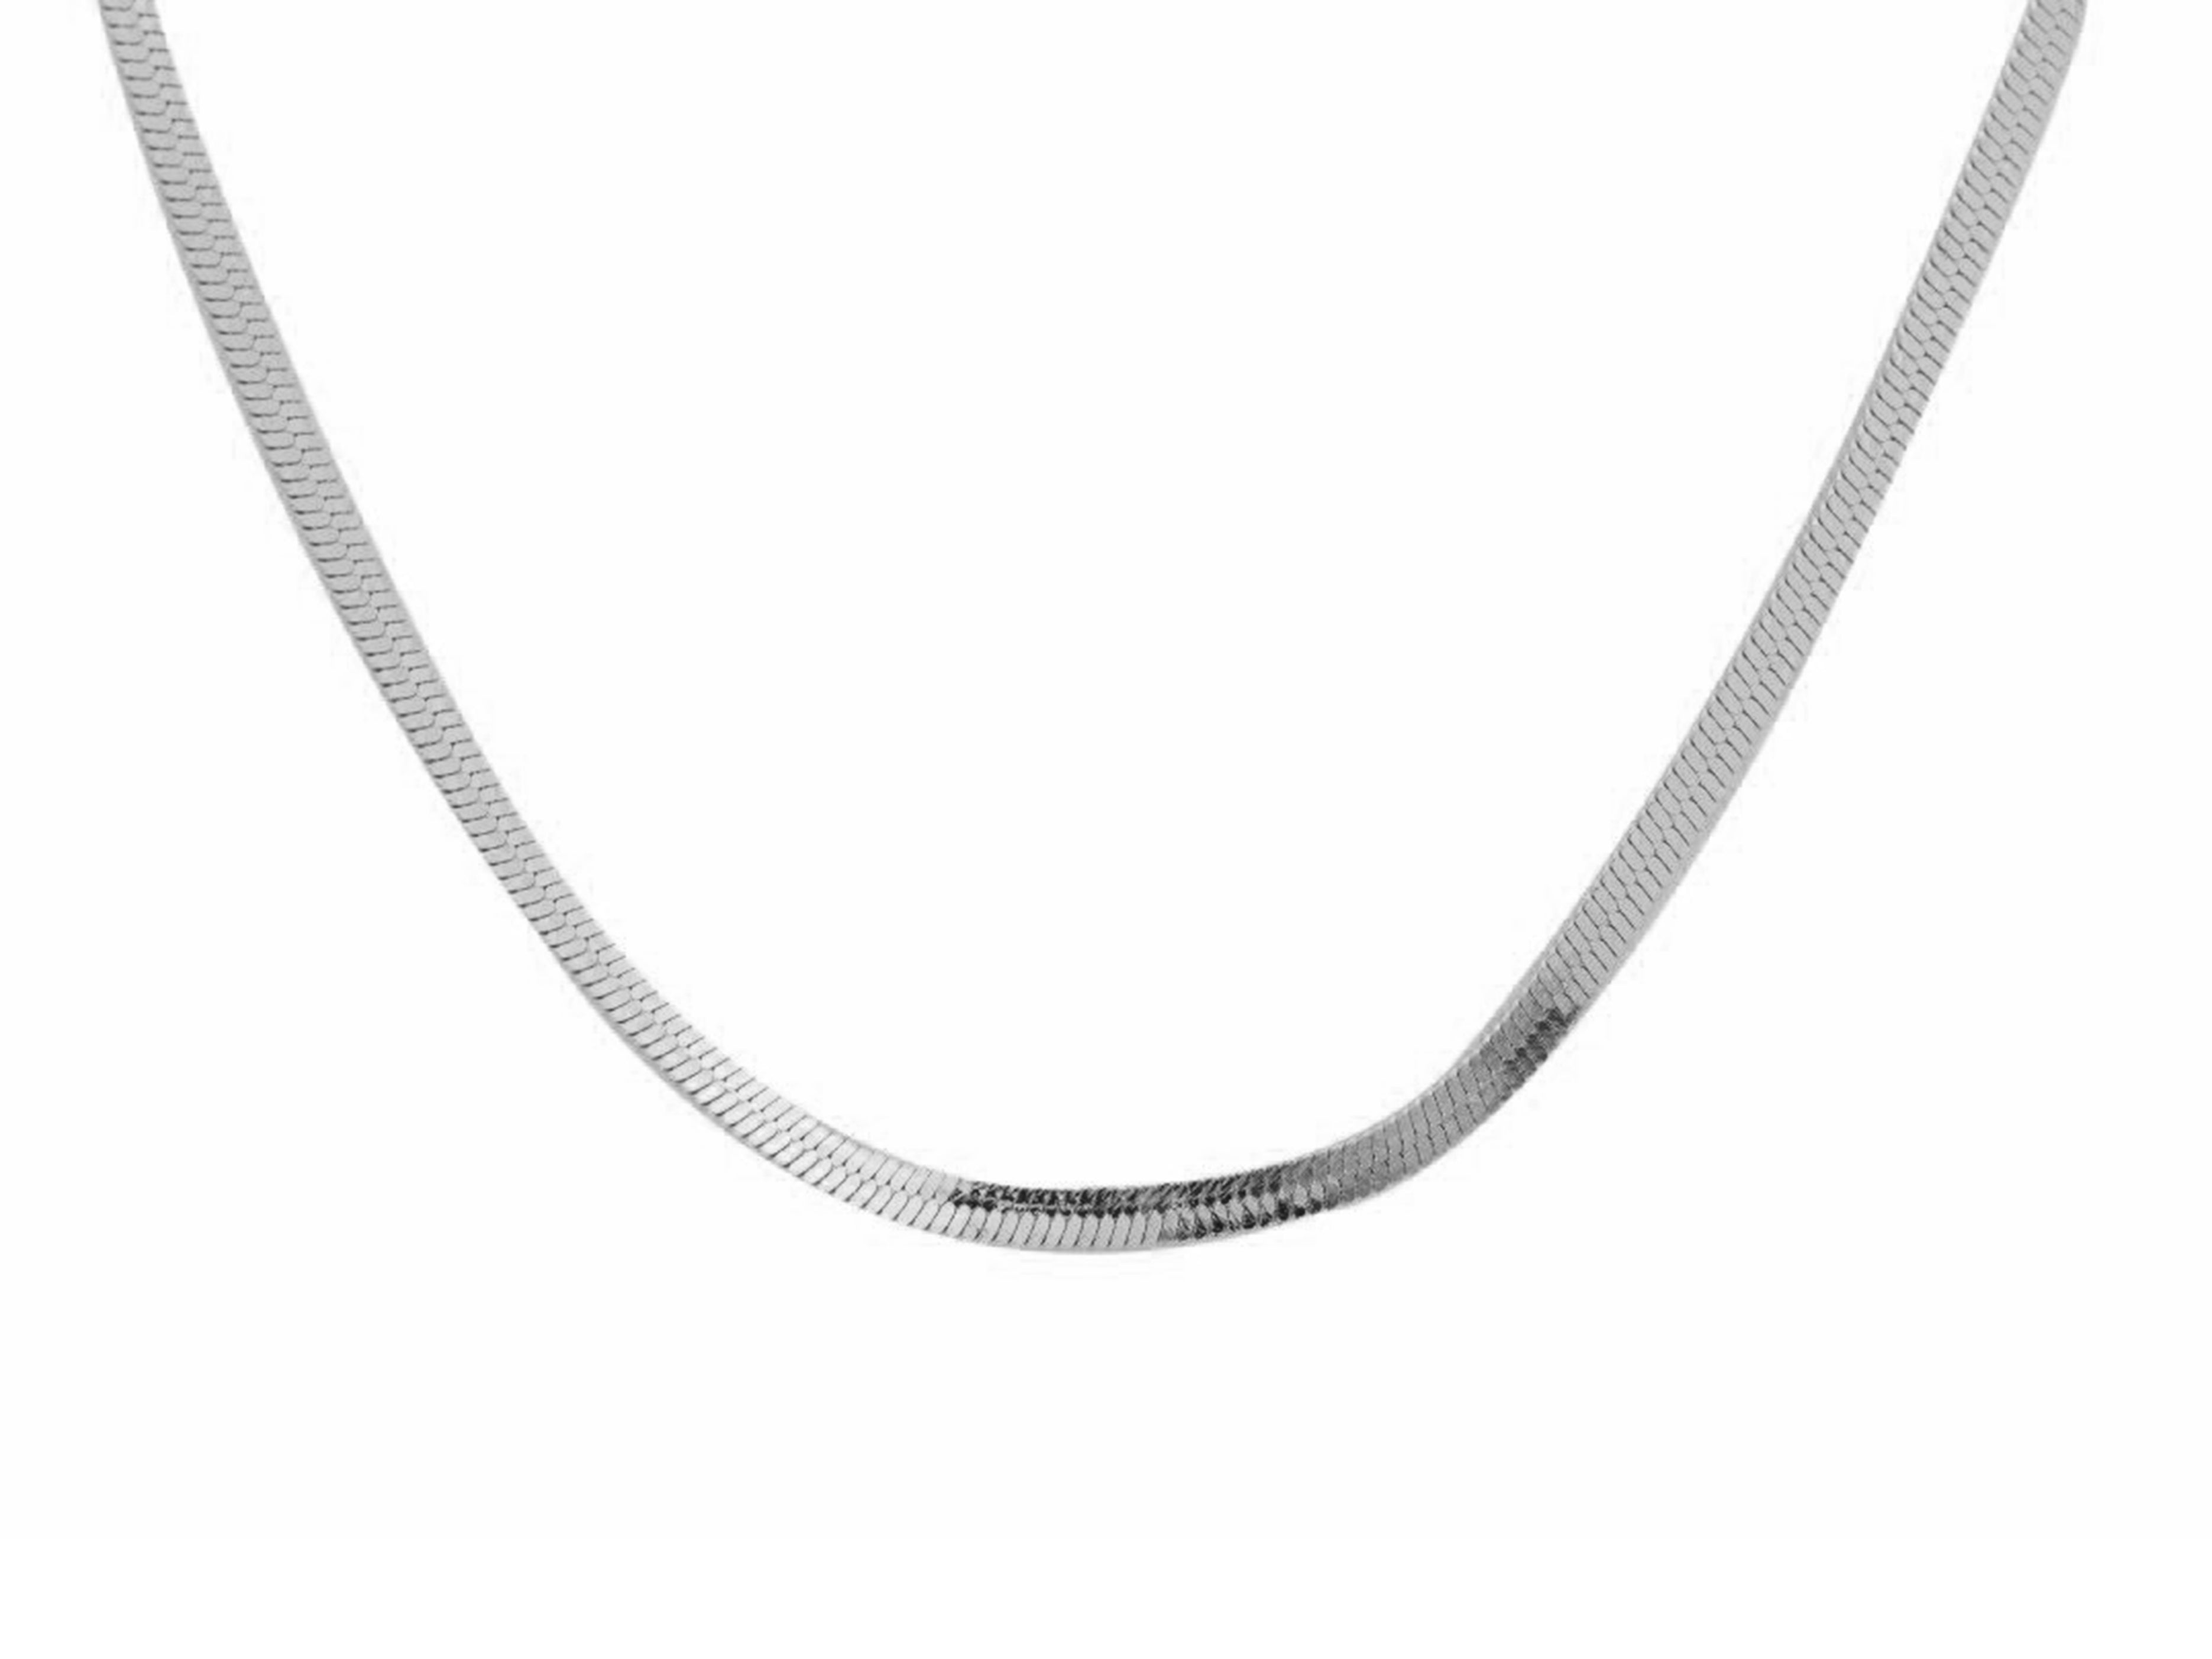 Herringbone choker, sterling silver, rhodium plated